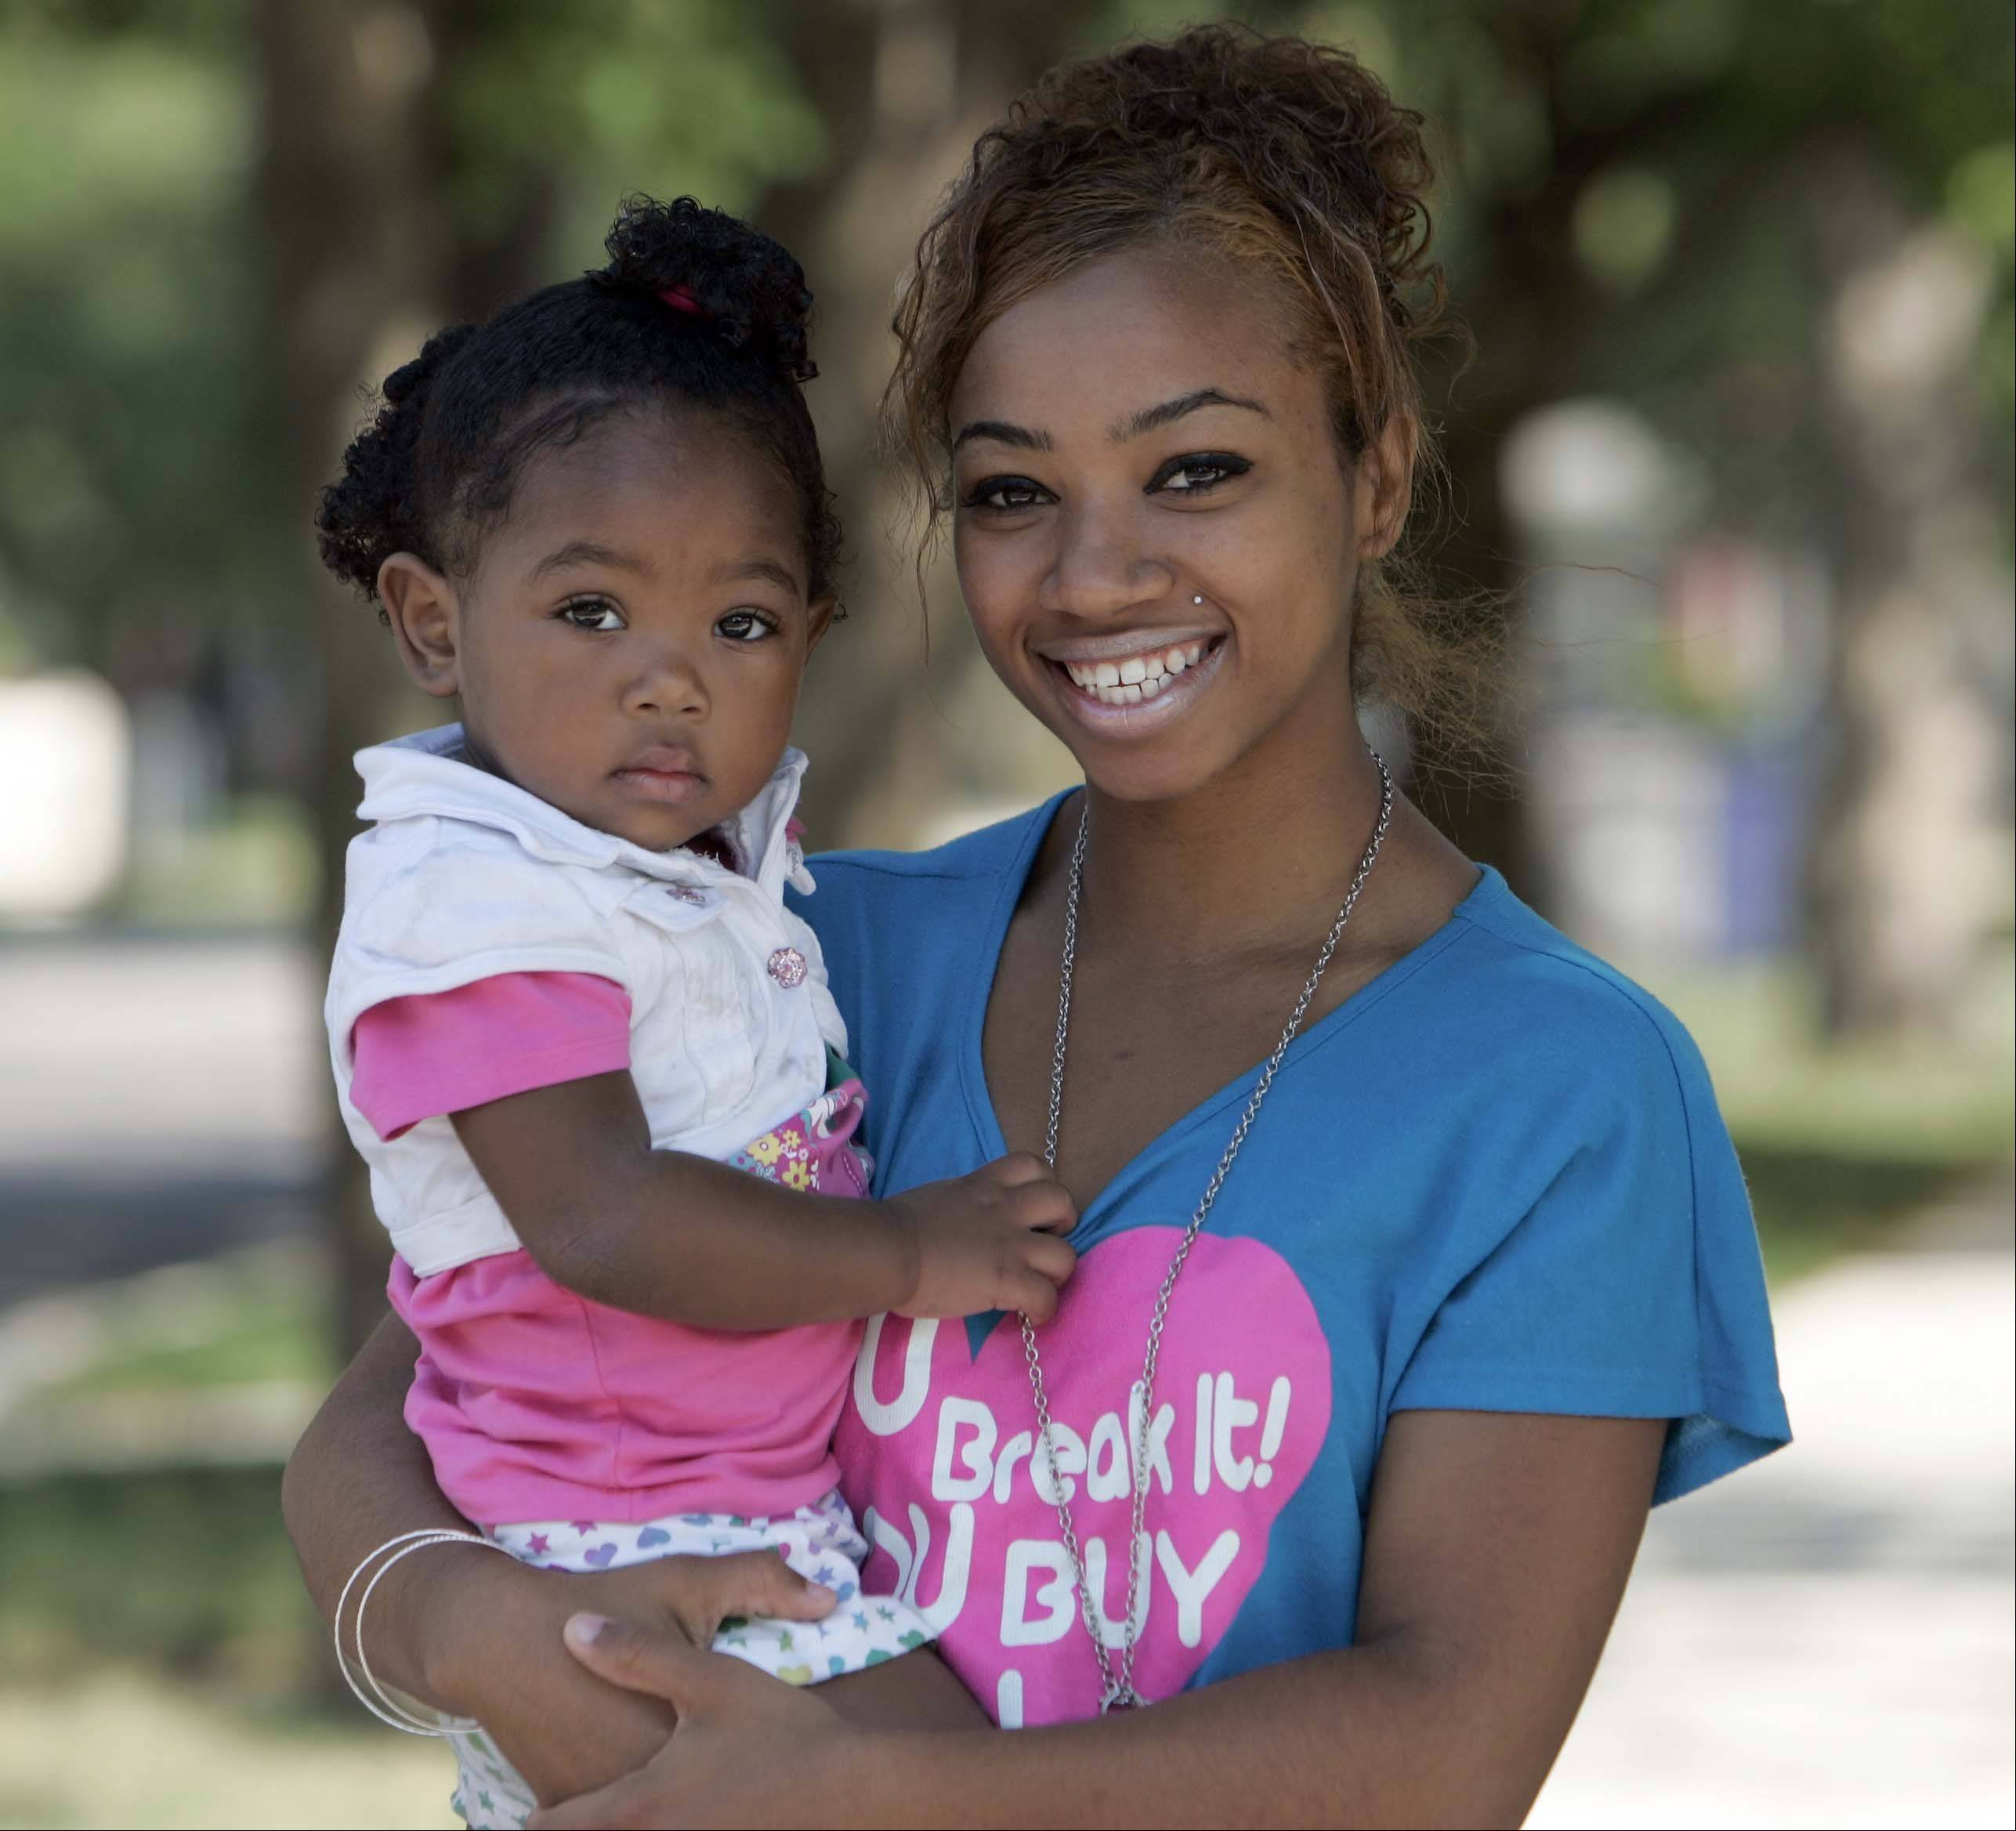 Because of Title IX, young moms like Chrystal Stokes of Elgin and parenting fathers must have equal access to school programs and extracurricular activities. Stokes got six weeks of excused absences from Elgin High after she gave birth to her daughter, Nevaeh Johnson.